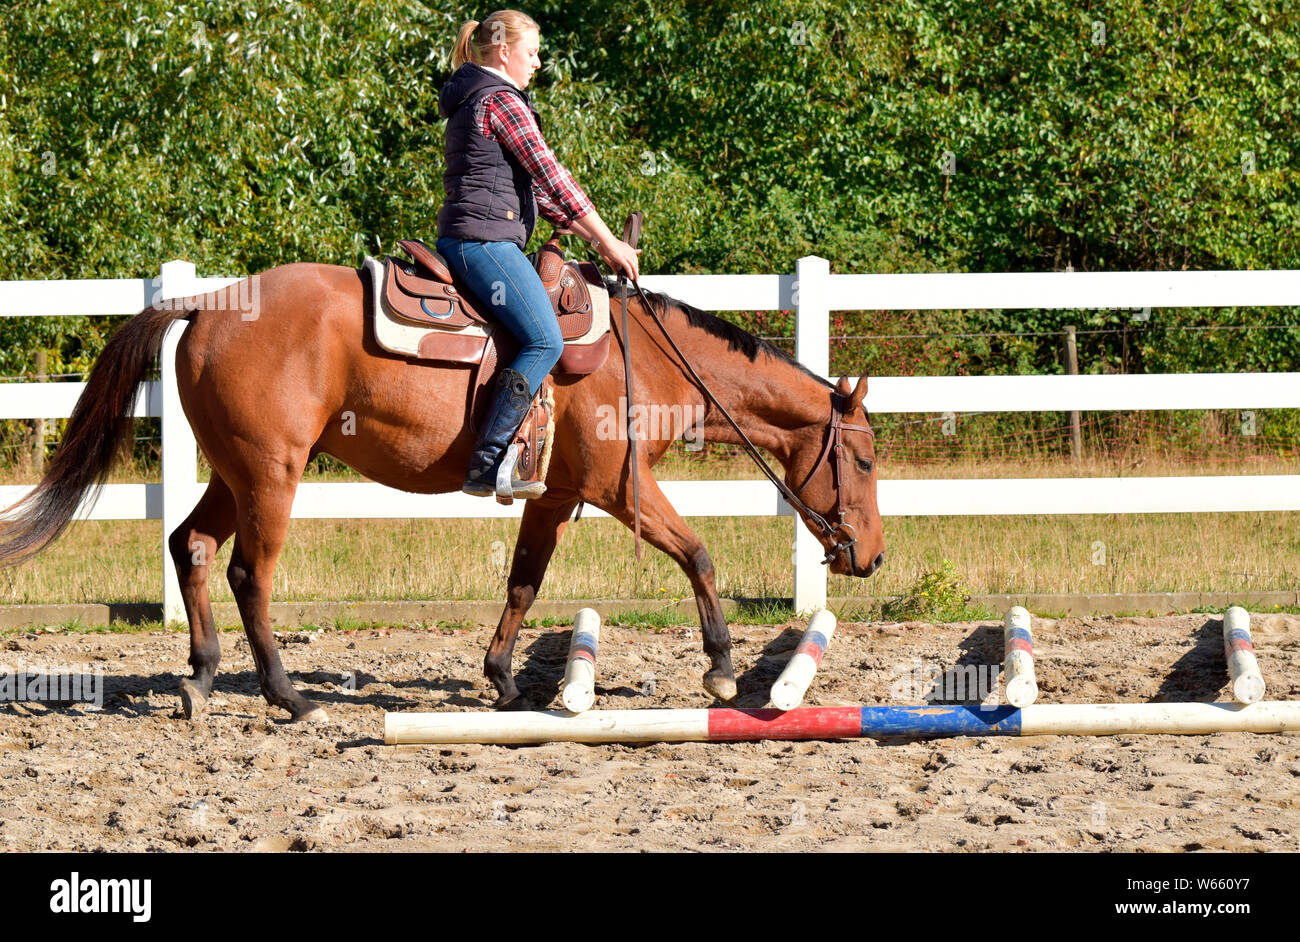 Horse Training Western Horse Ground Work Young Horse Rails Rail Stock Photo Alamy